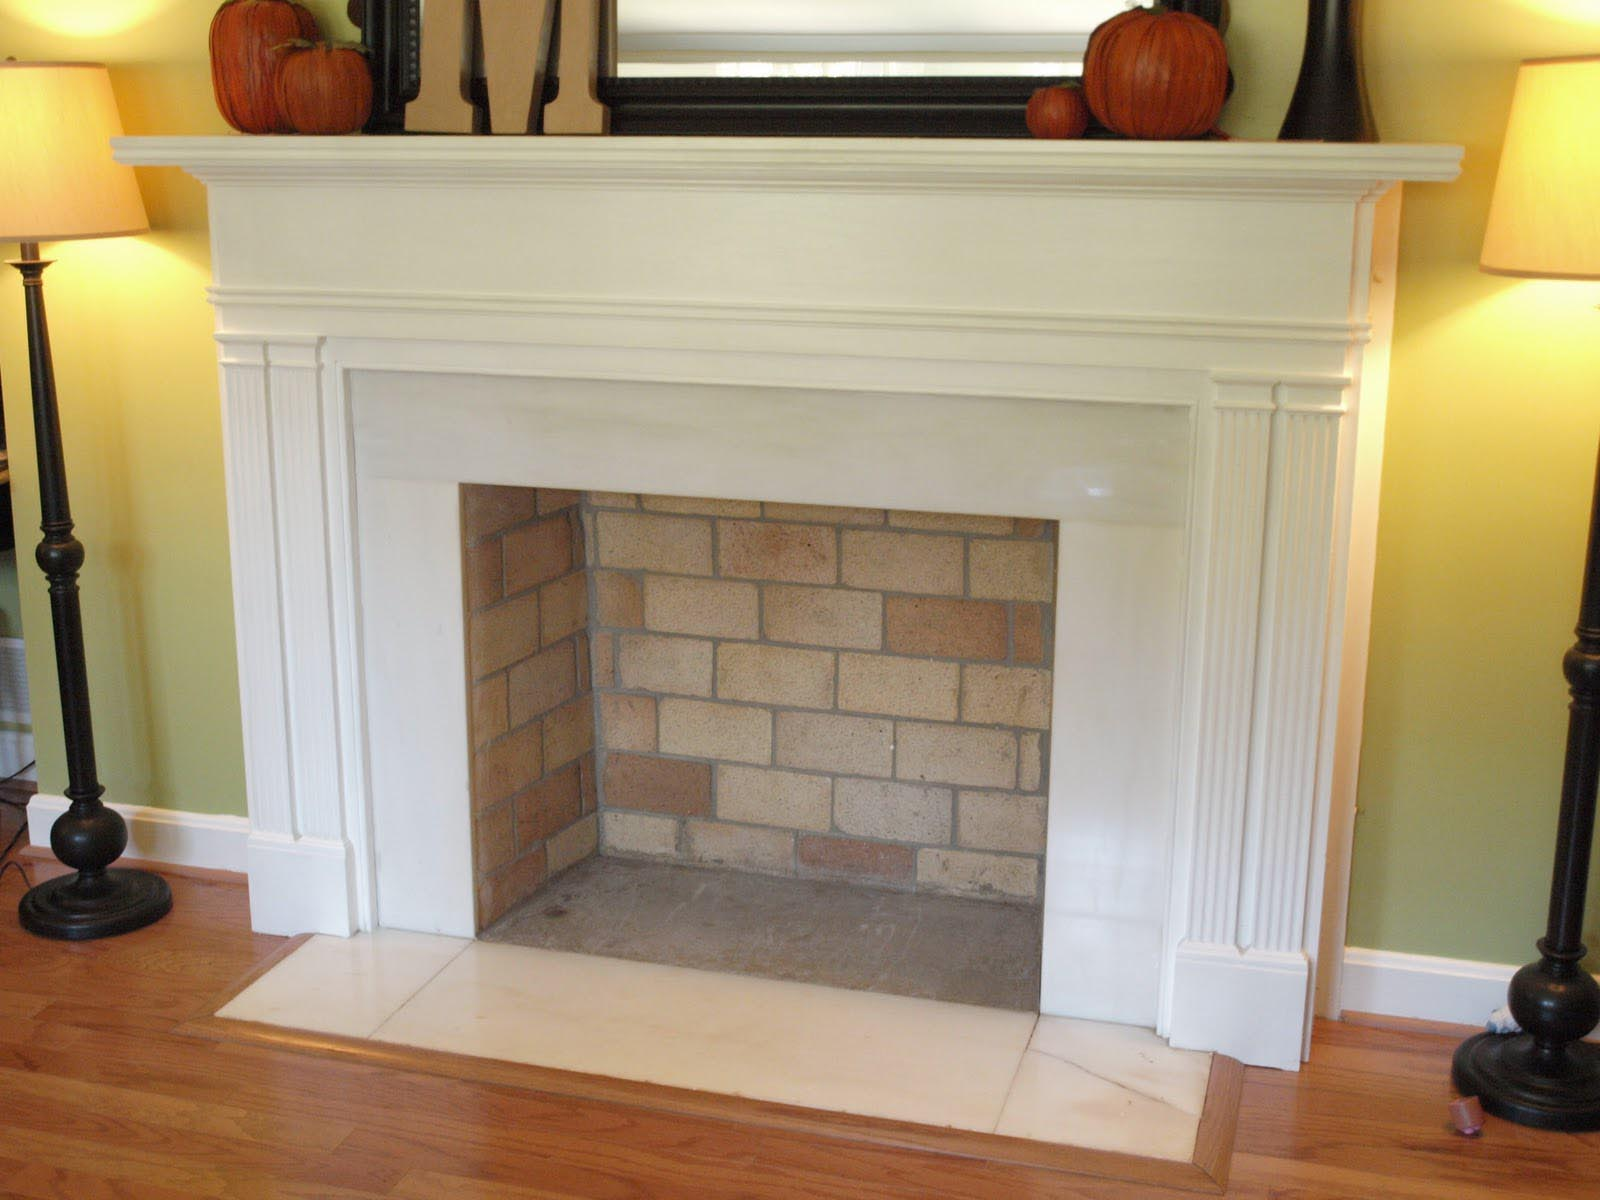 How to Make a Fake Fireplace Ideas for You : How To Make A Fake Fireplace Out Of A Bookshelf. How to make a fake fireplace out of a bookshelf. fireplace ideas